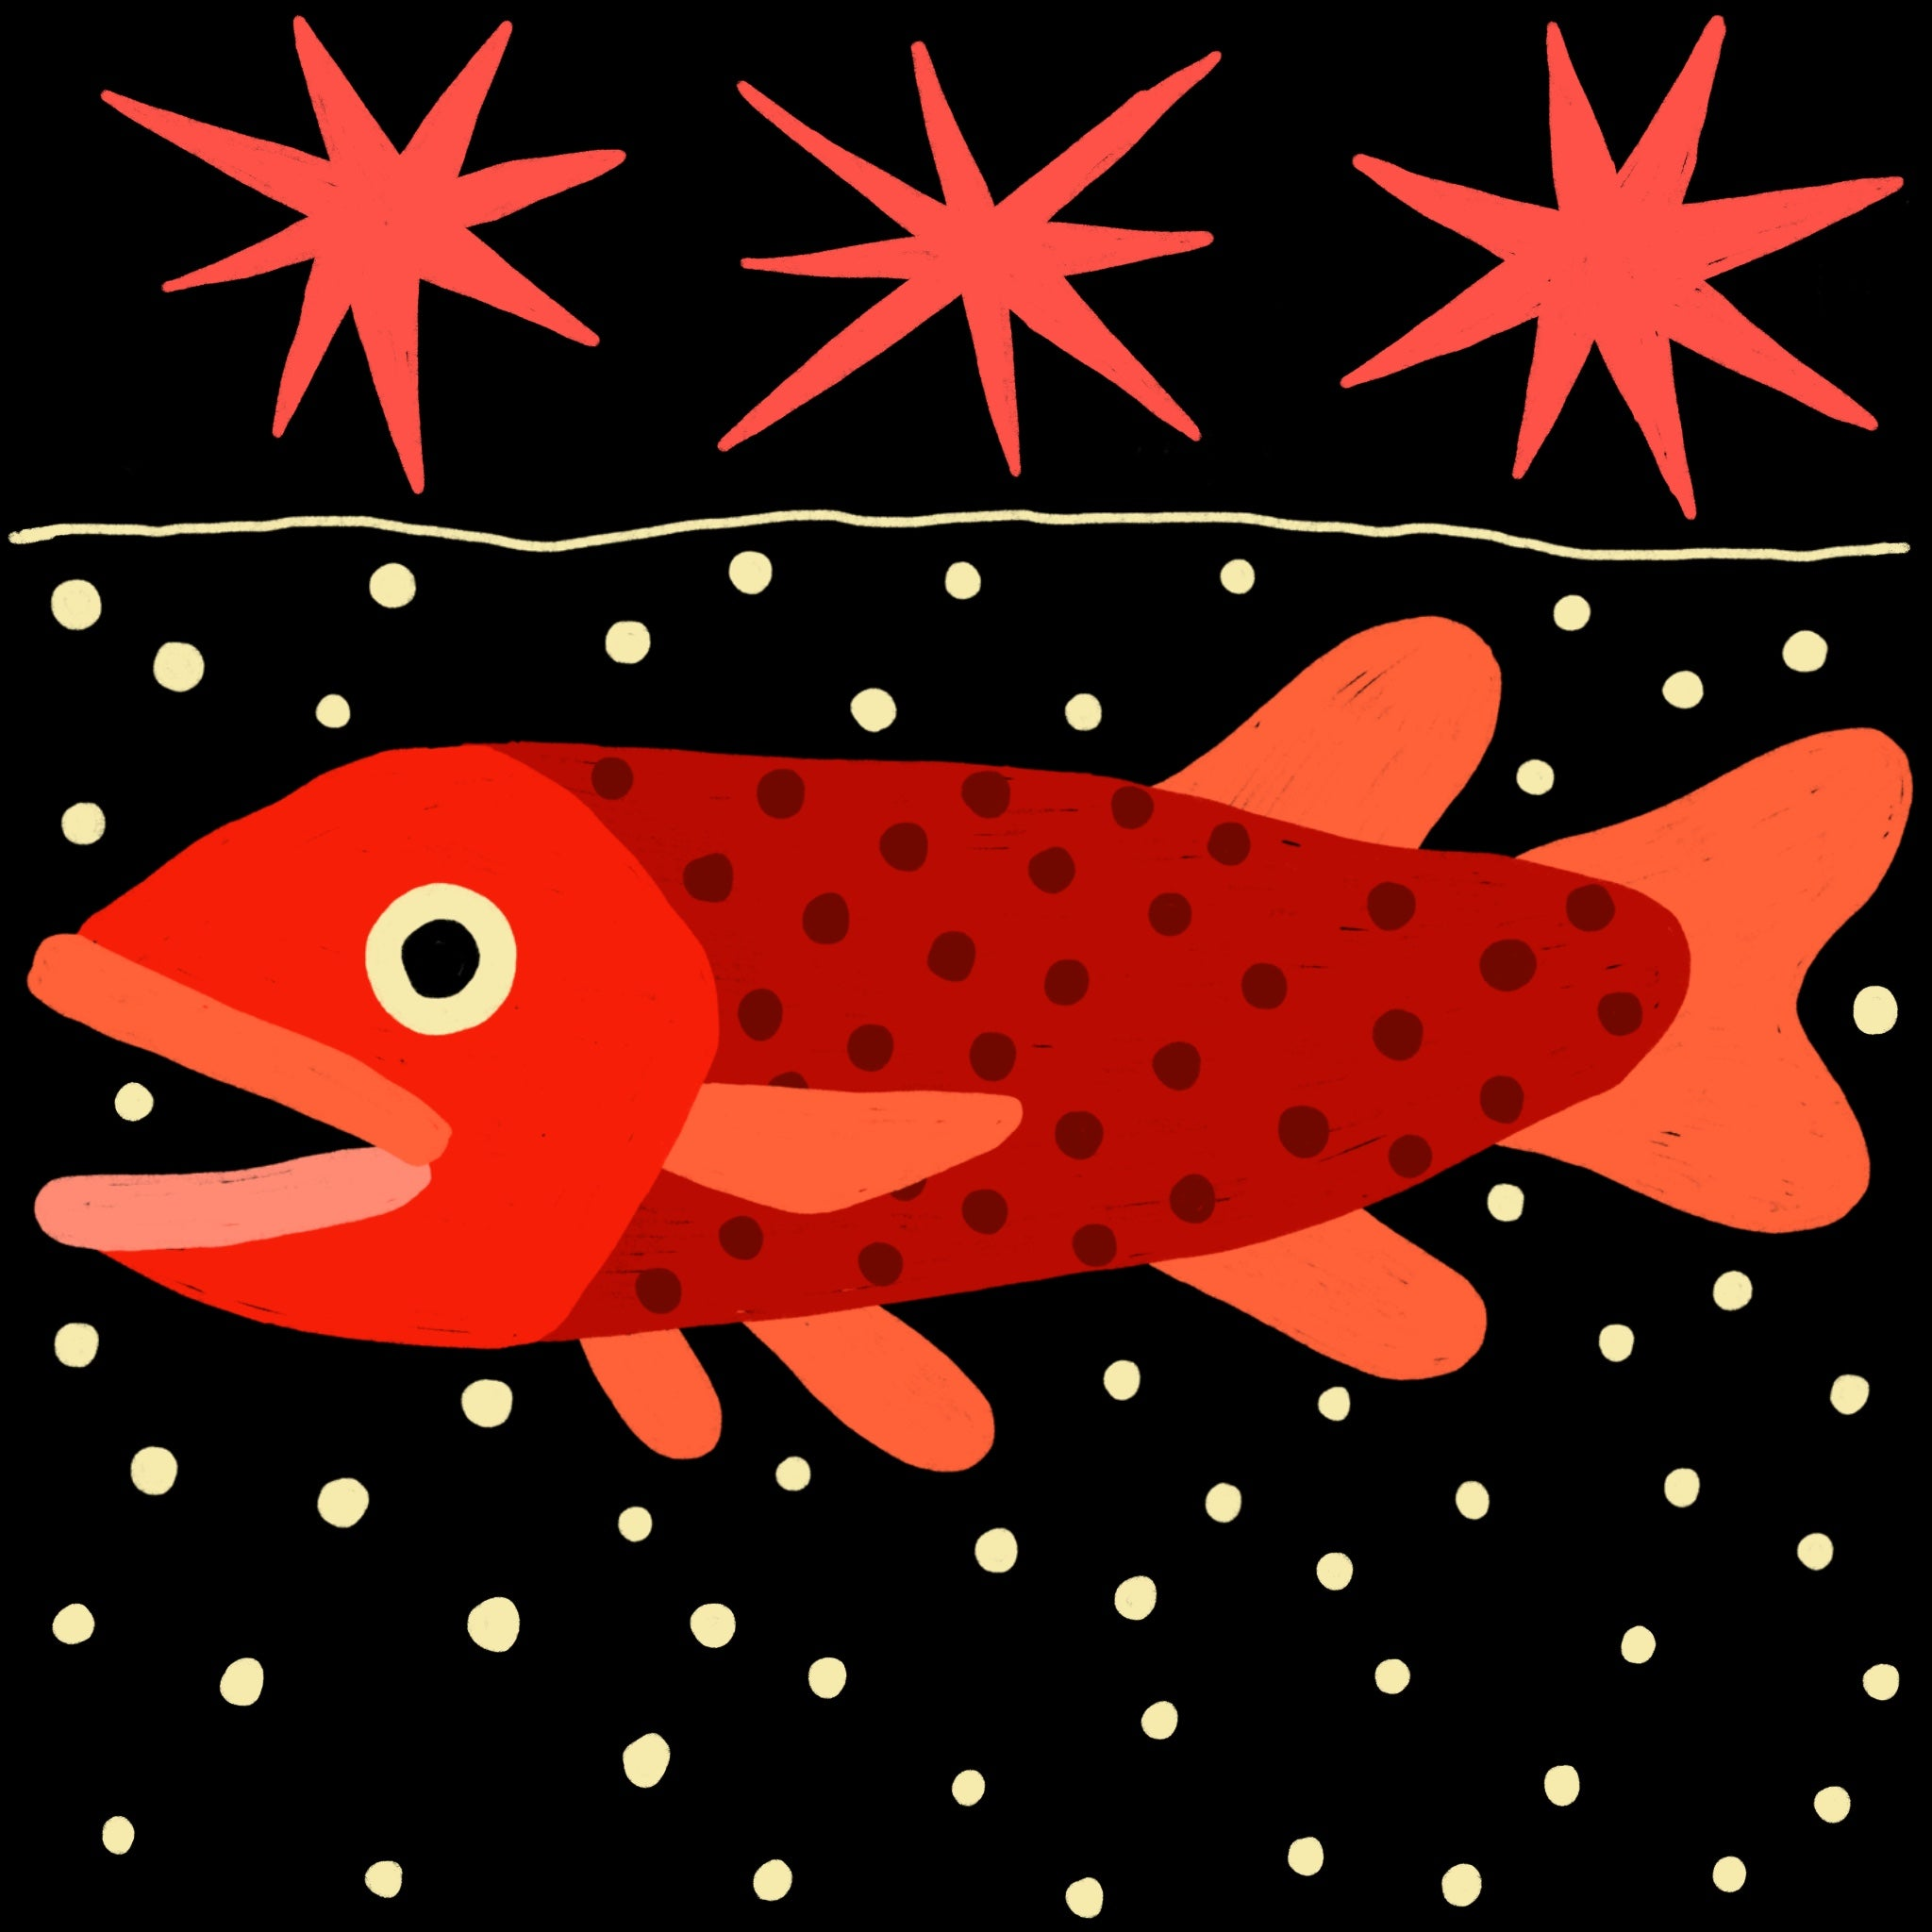 Illustration of a fish by Tom O'Hern